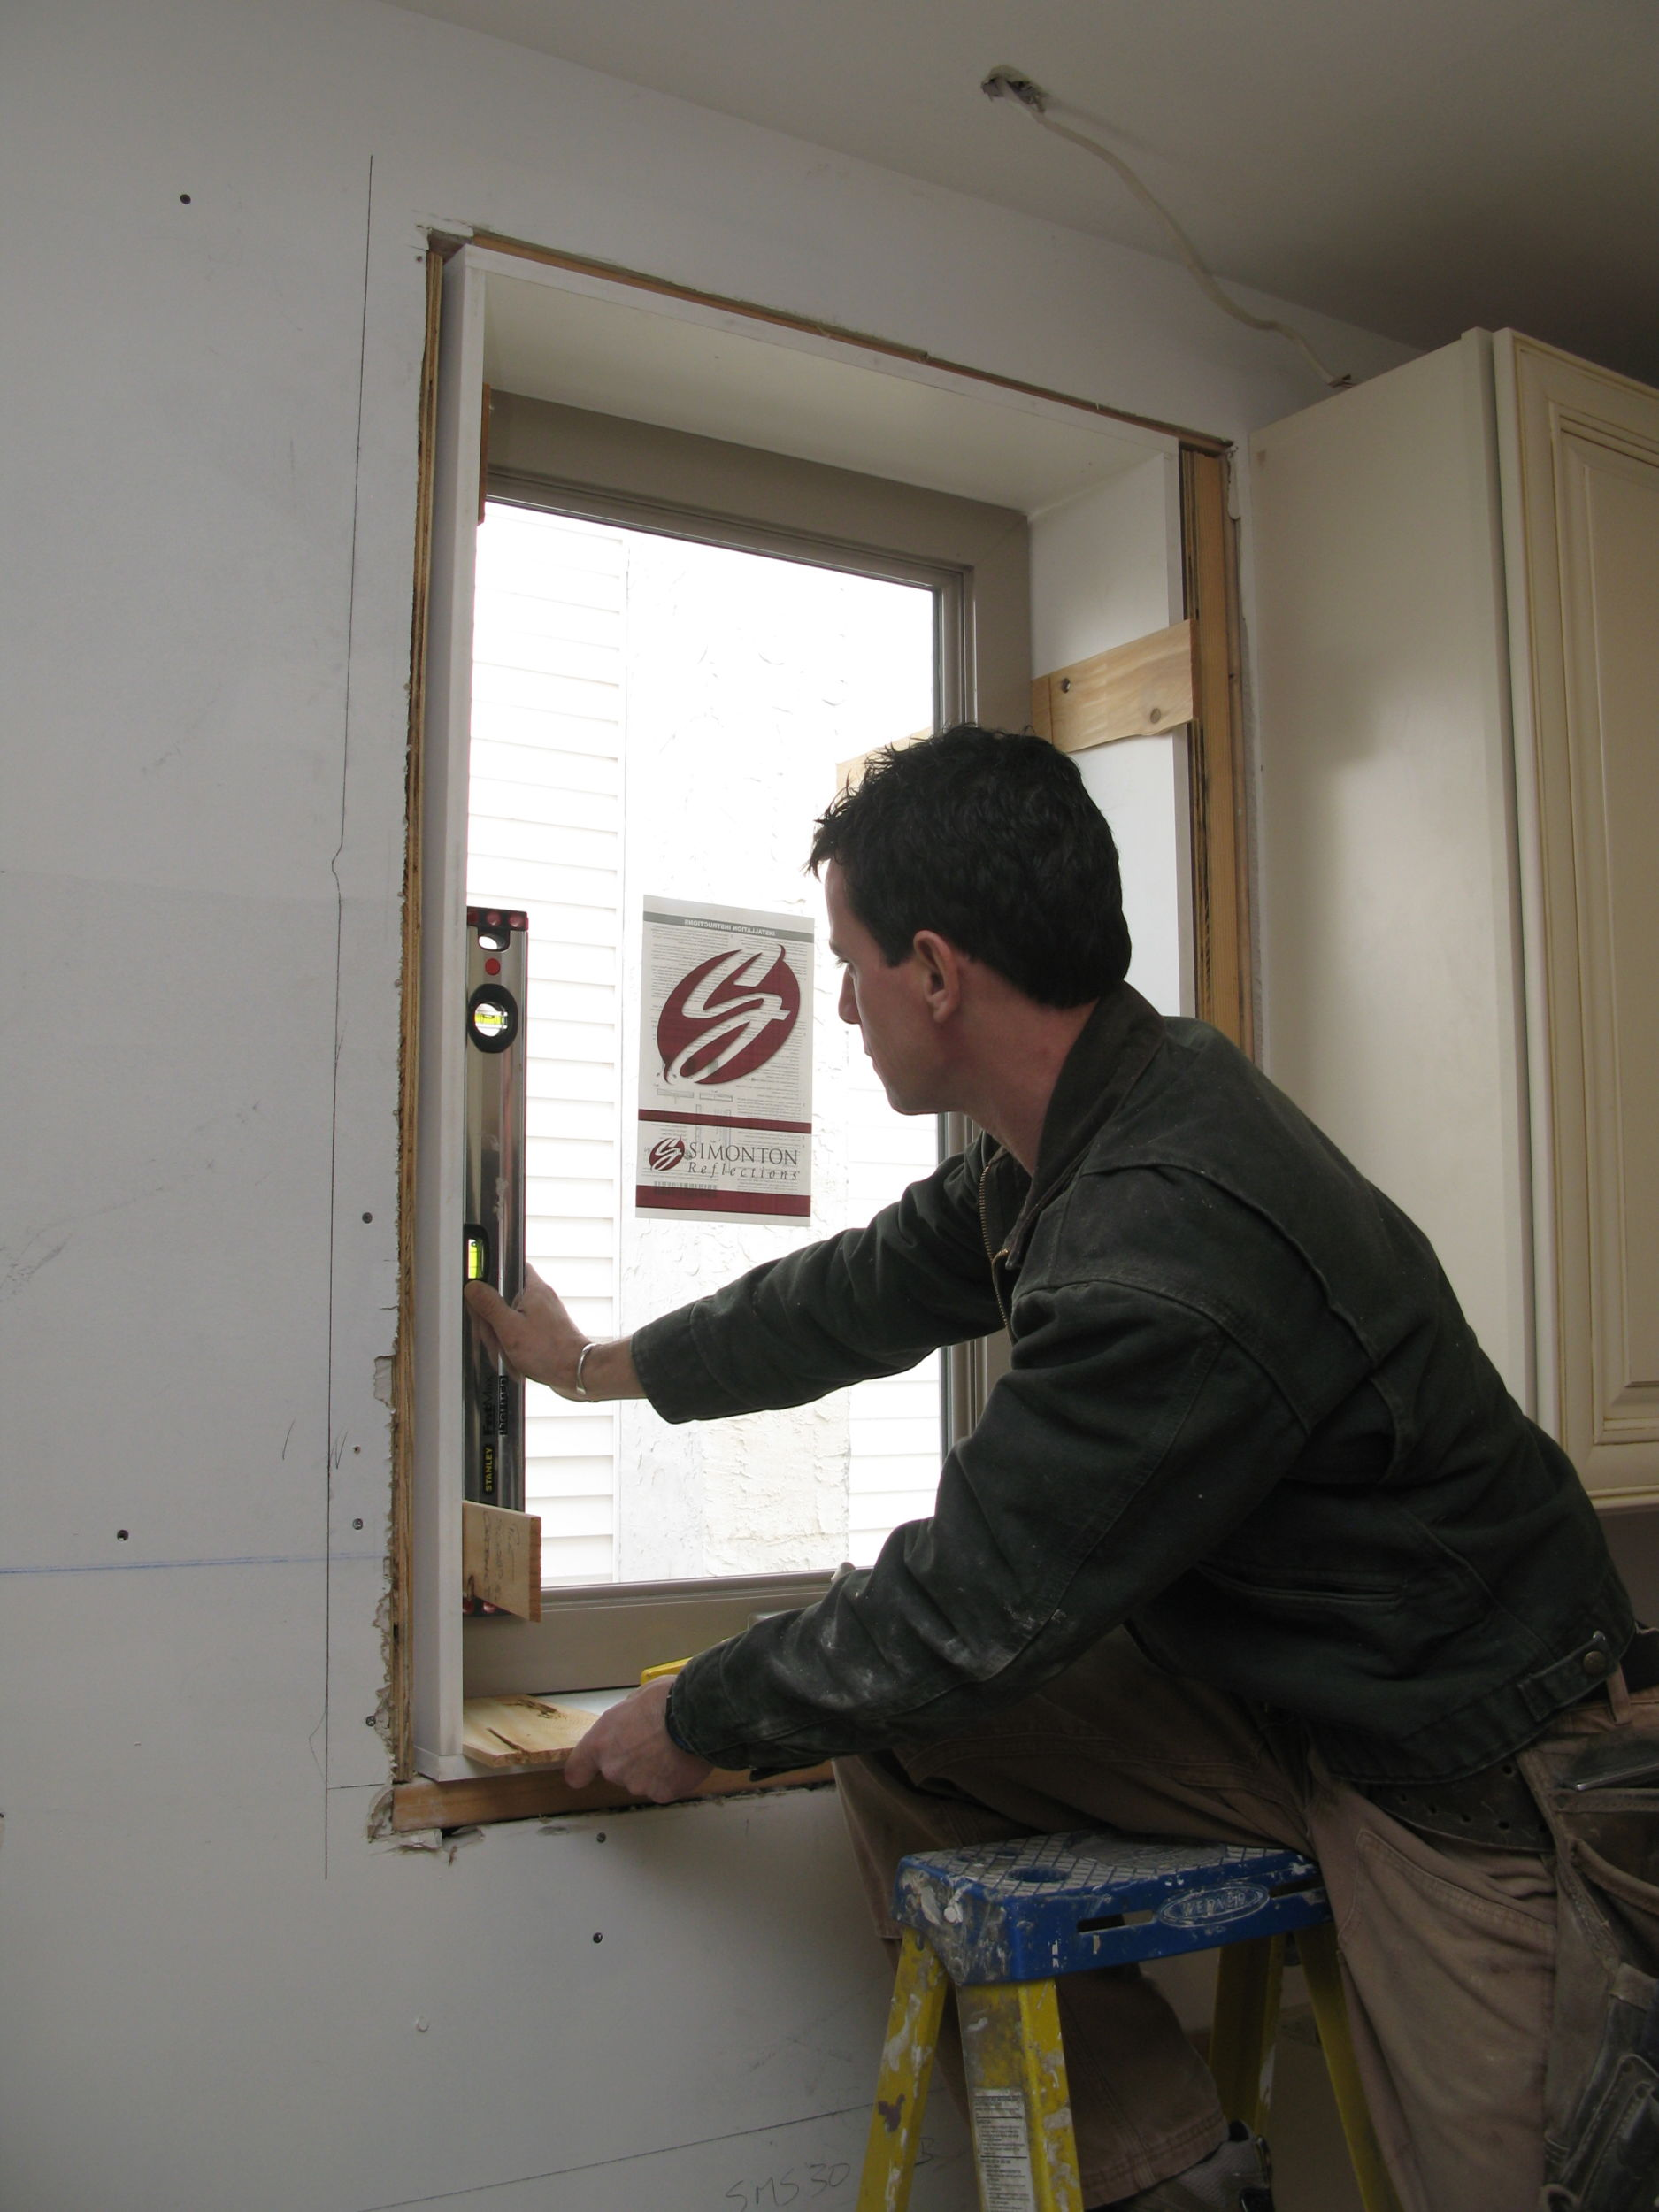 Installing a Simonton replacement window as part of a whole-house upgrade. No lead; no problem.